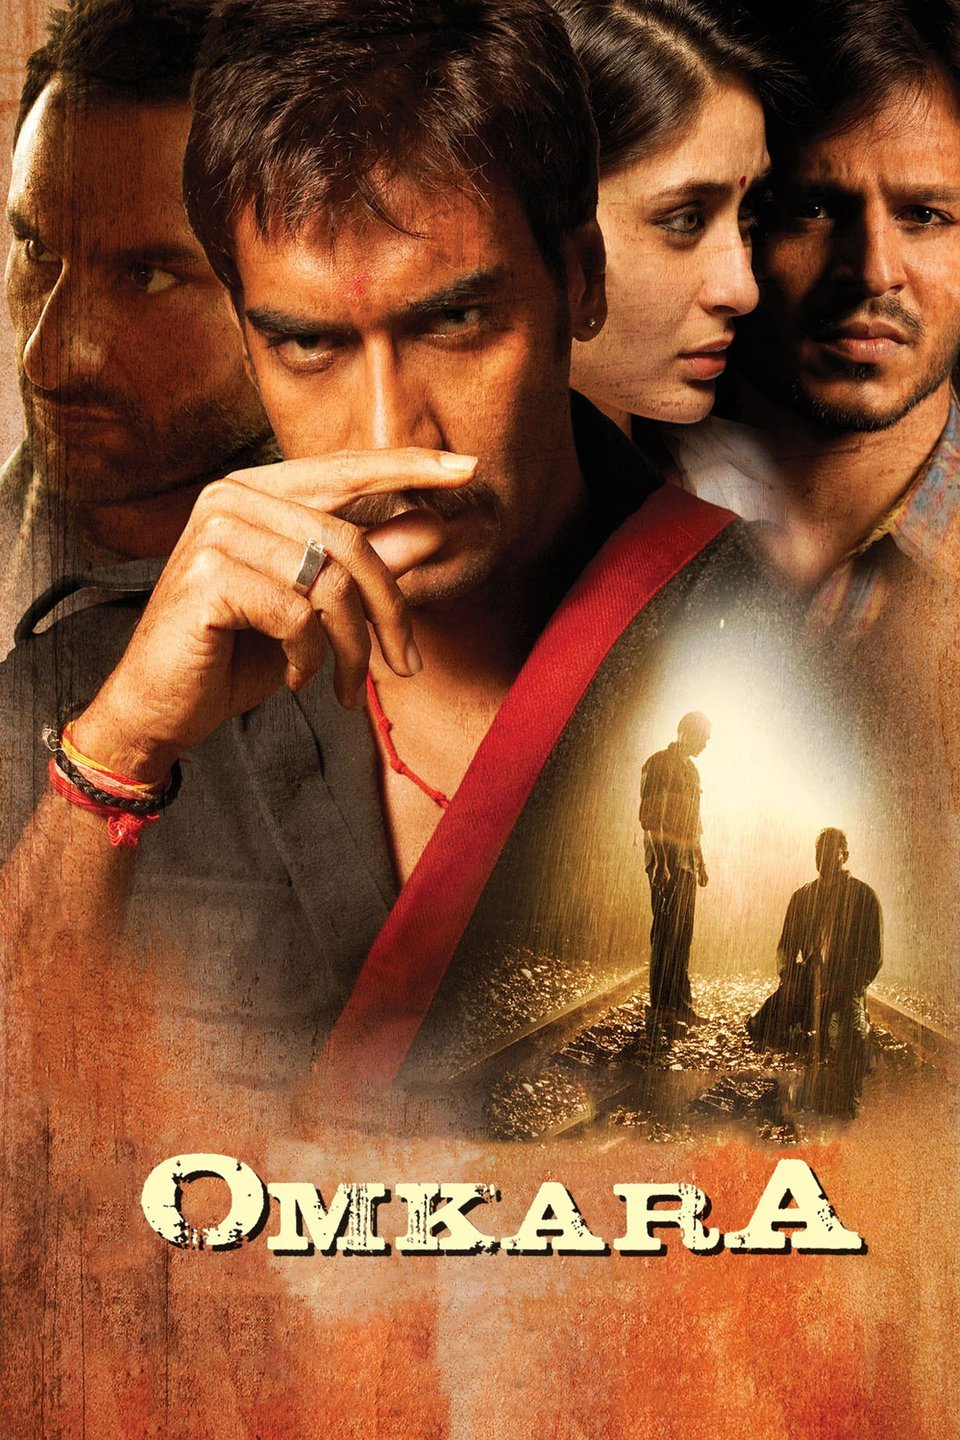 Omkara (2006) Hindi 1080p WEB-DL x264 AAC MSubS – Hon3yHD | 6.25 GB |